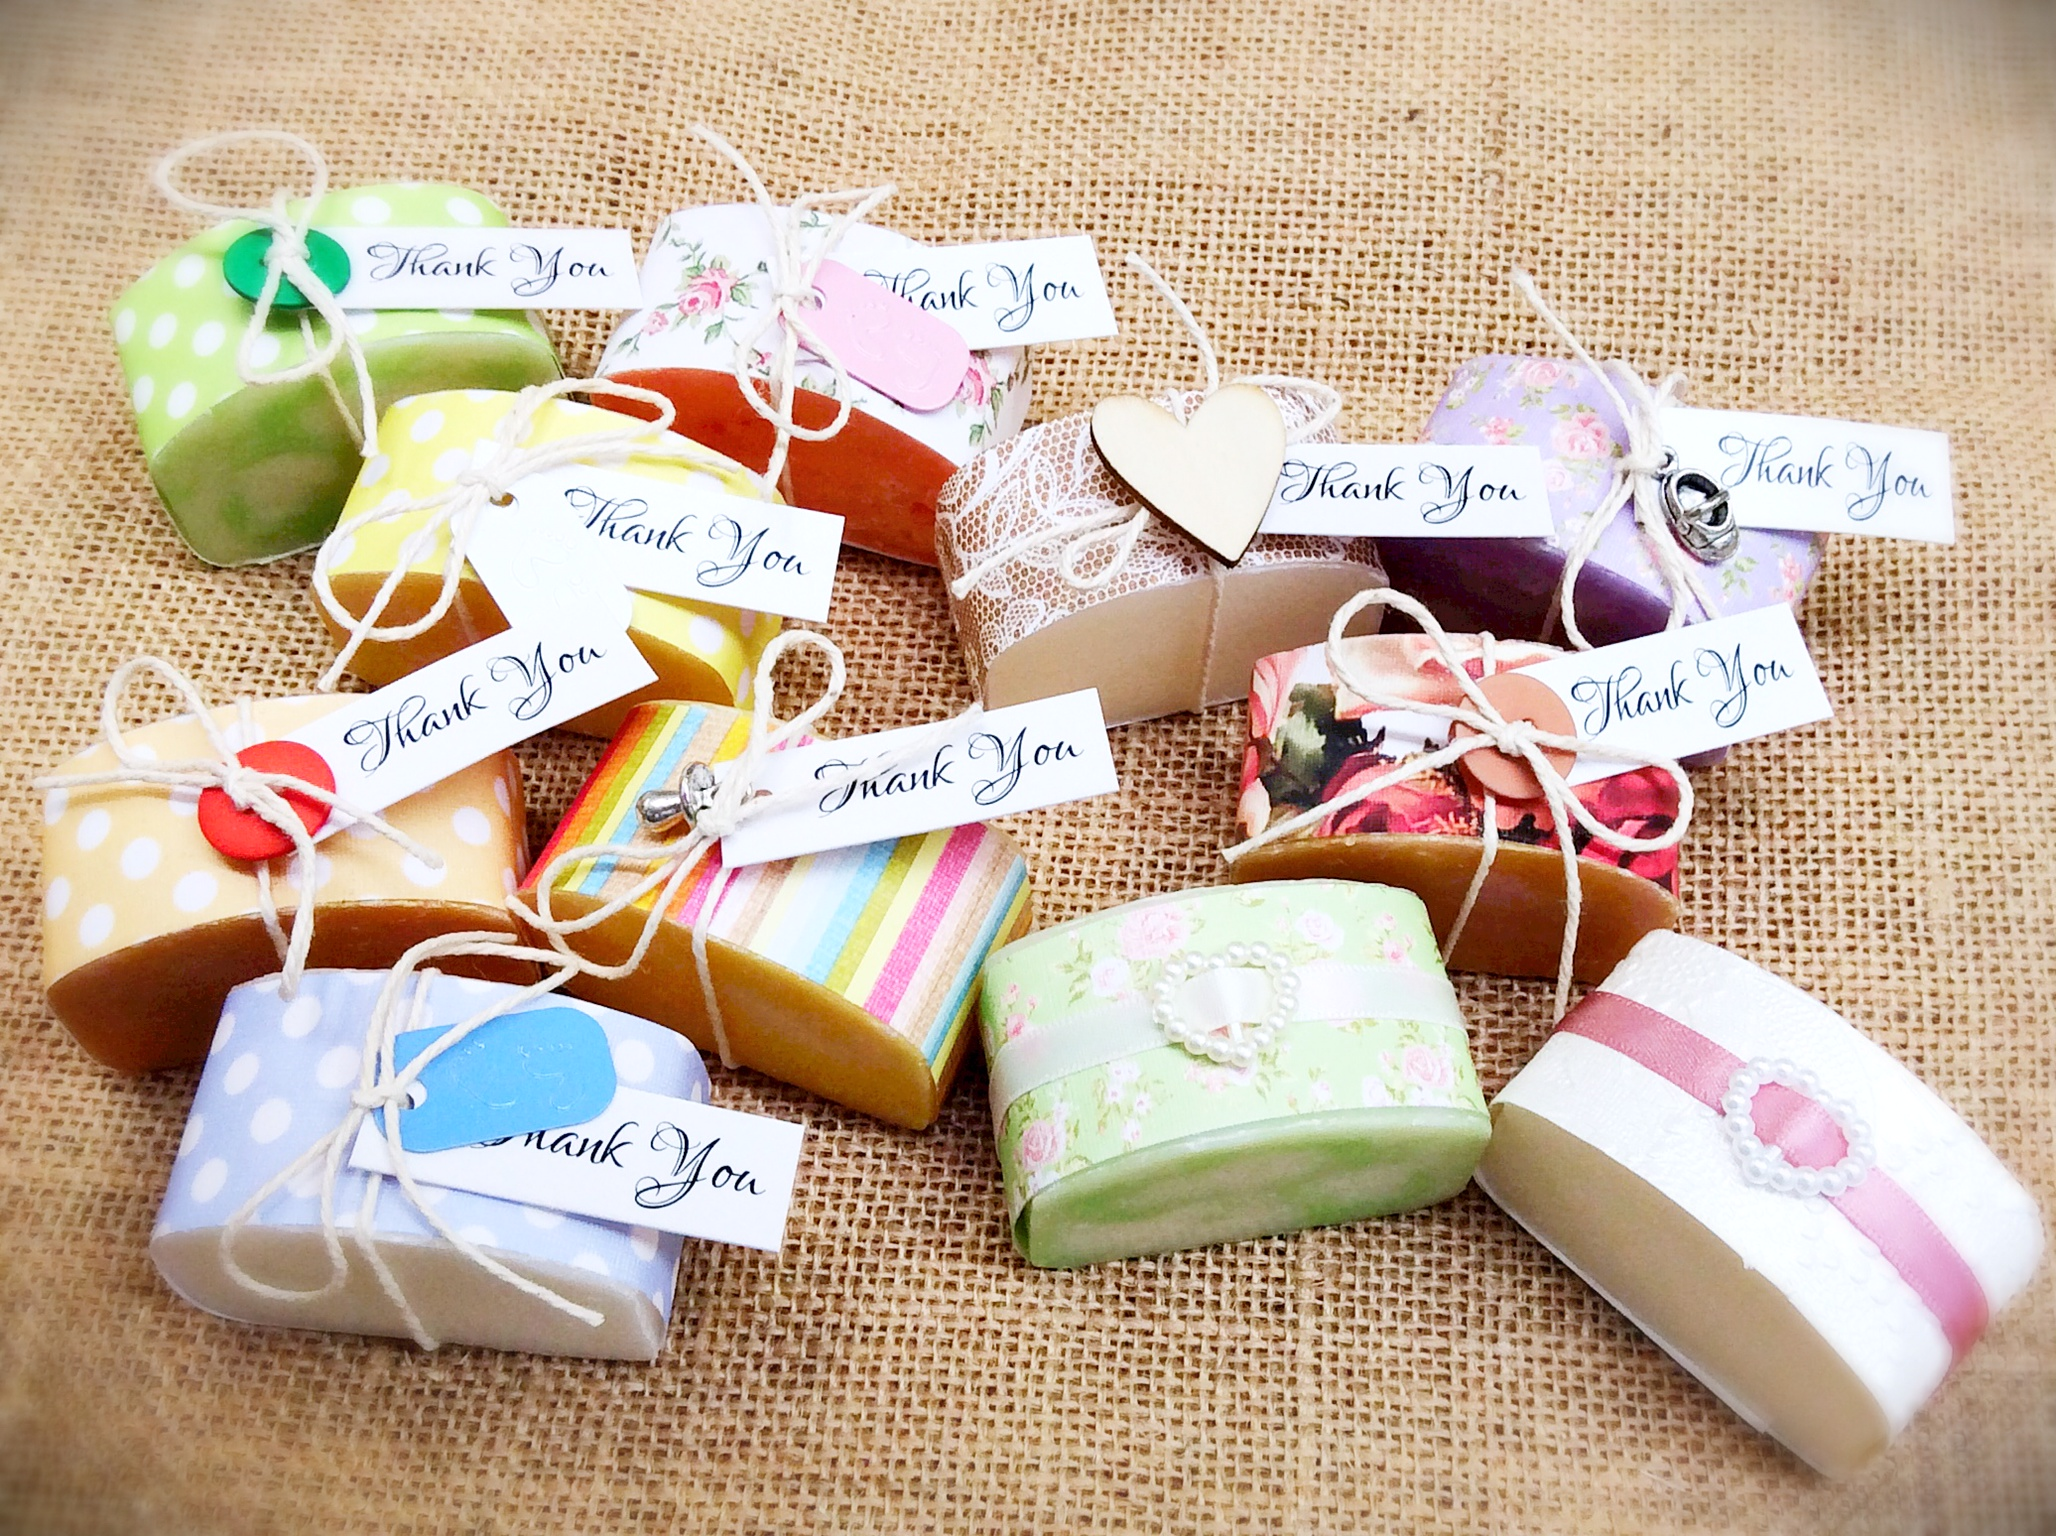 2-mini-soap-group-photo.jpg